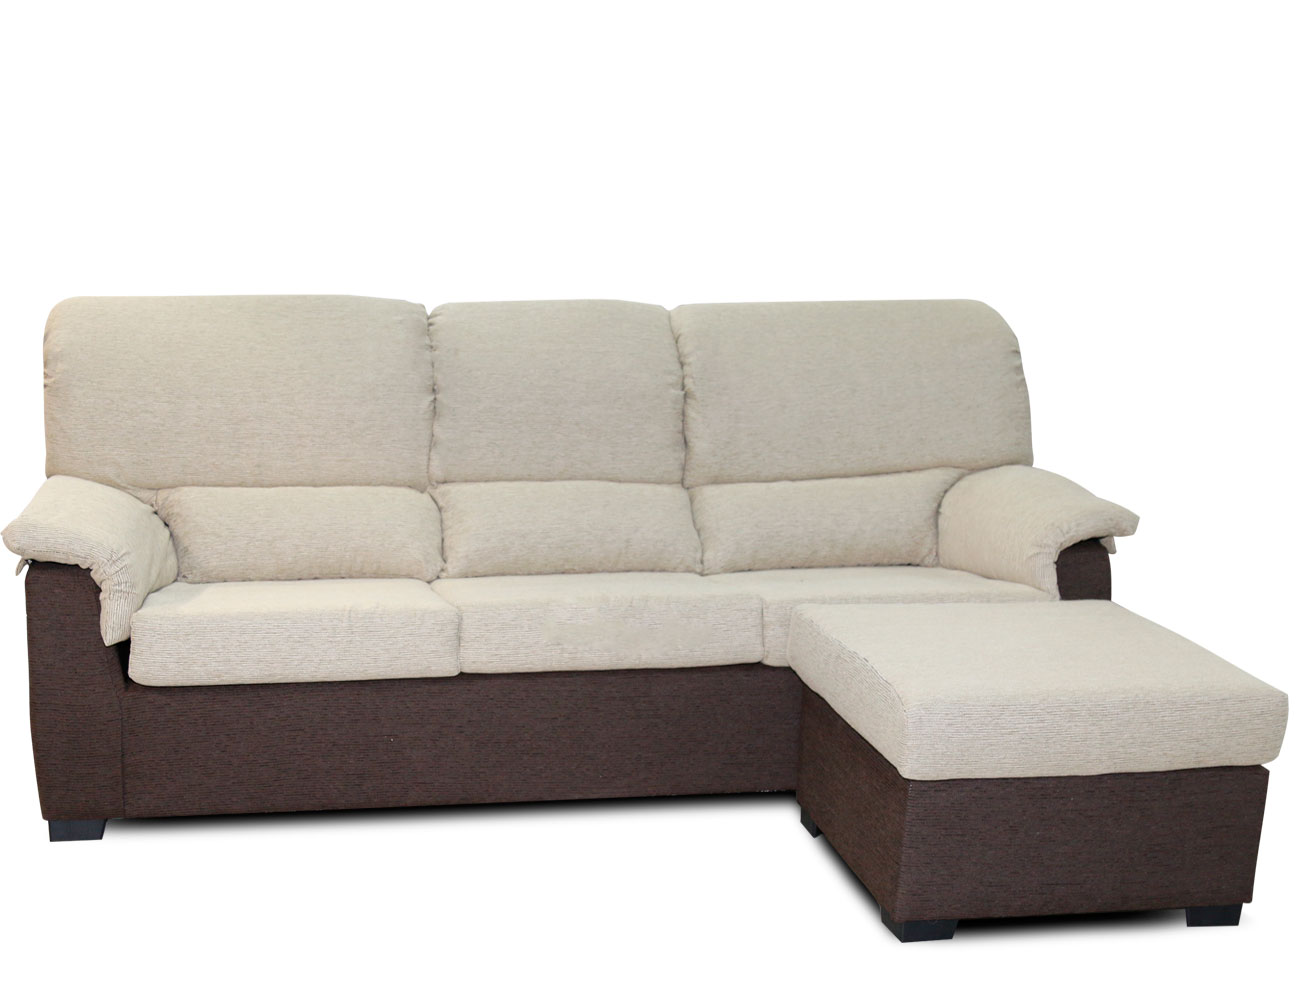 Sof chaiselongue barato con puf reversible 15285 for Sofas modulares baratos